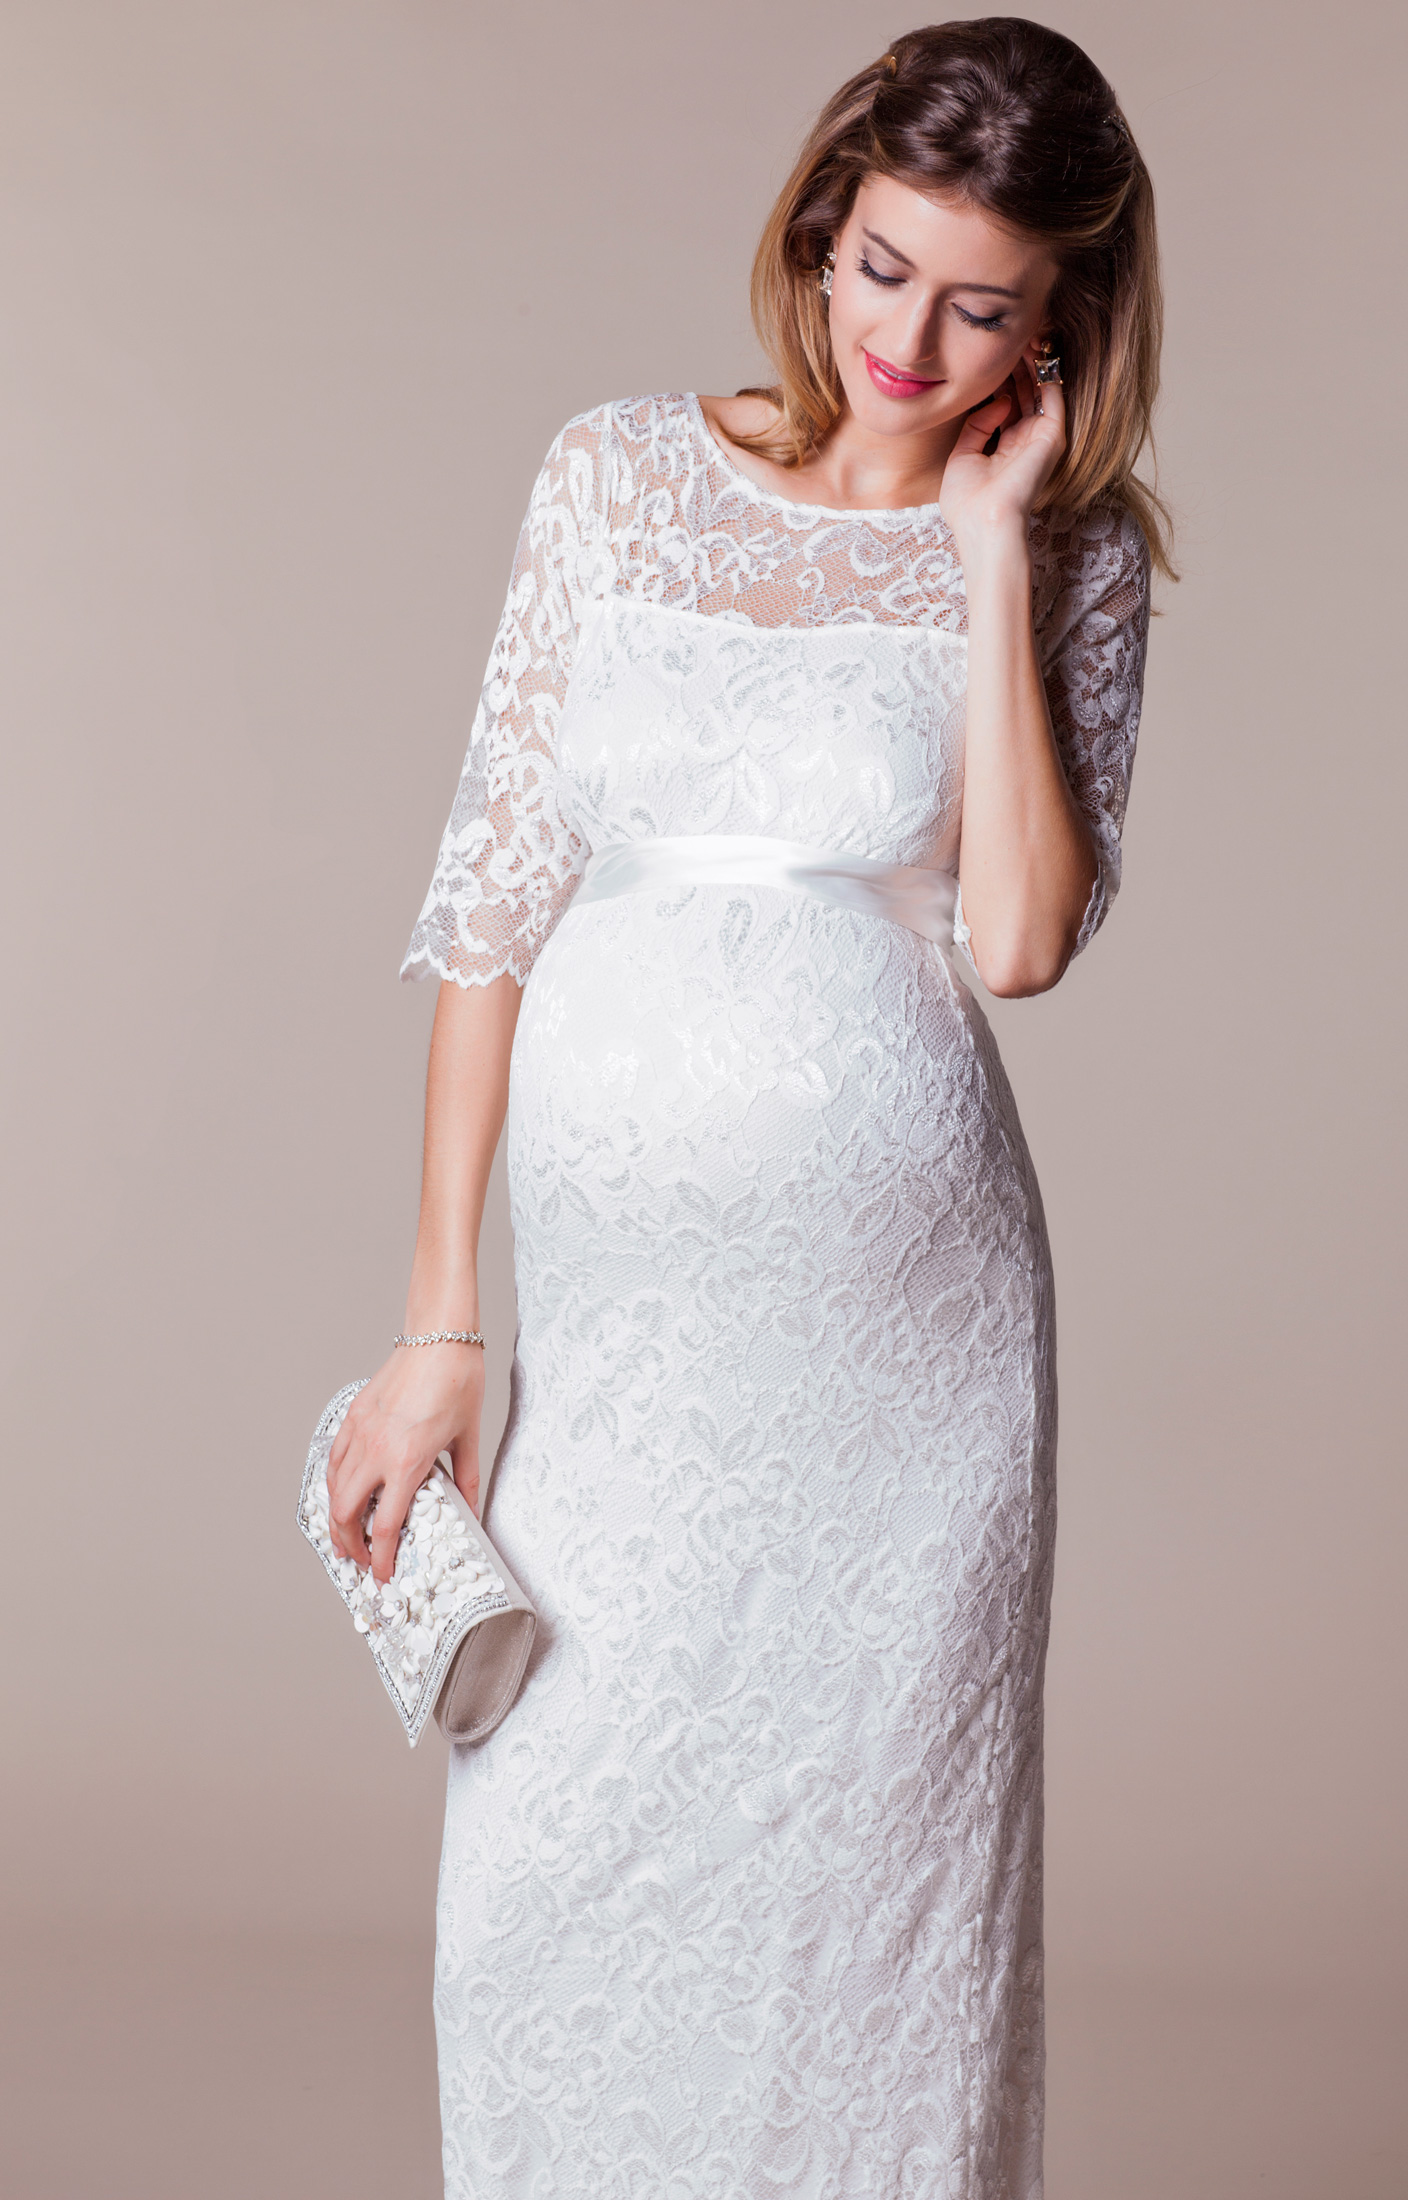 Amelia Lace Maternity Wedding Dress Long (Ivory) - Maternity Wedding Dresses dca9f32e5